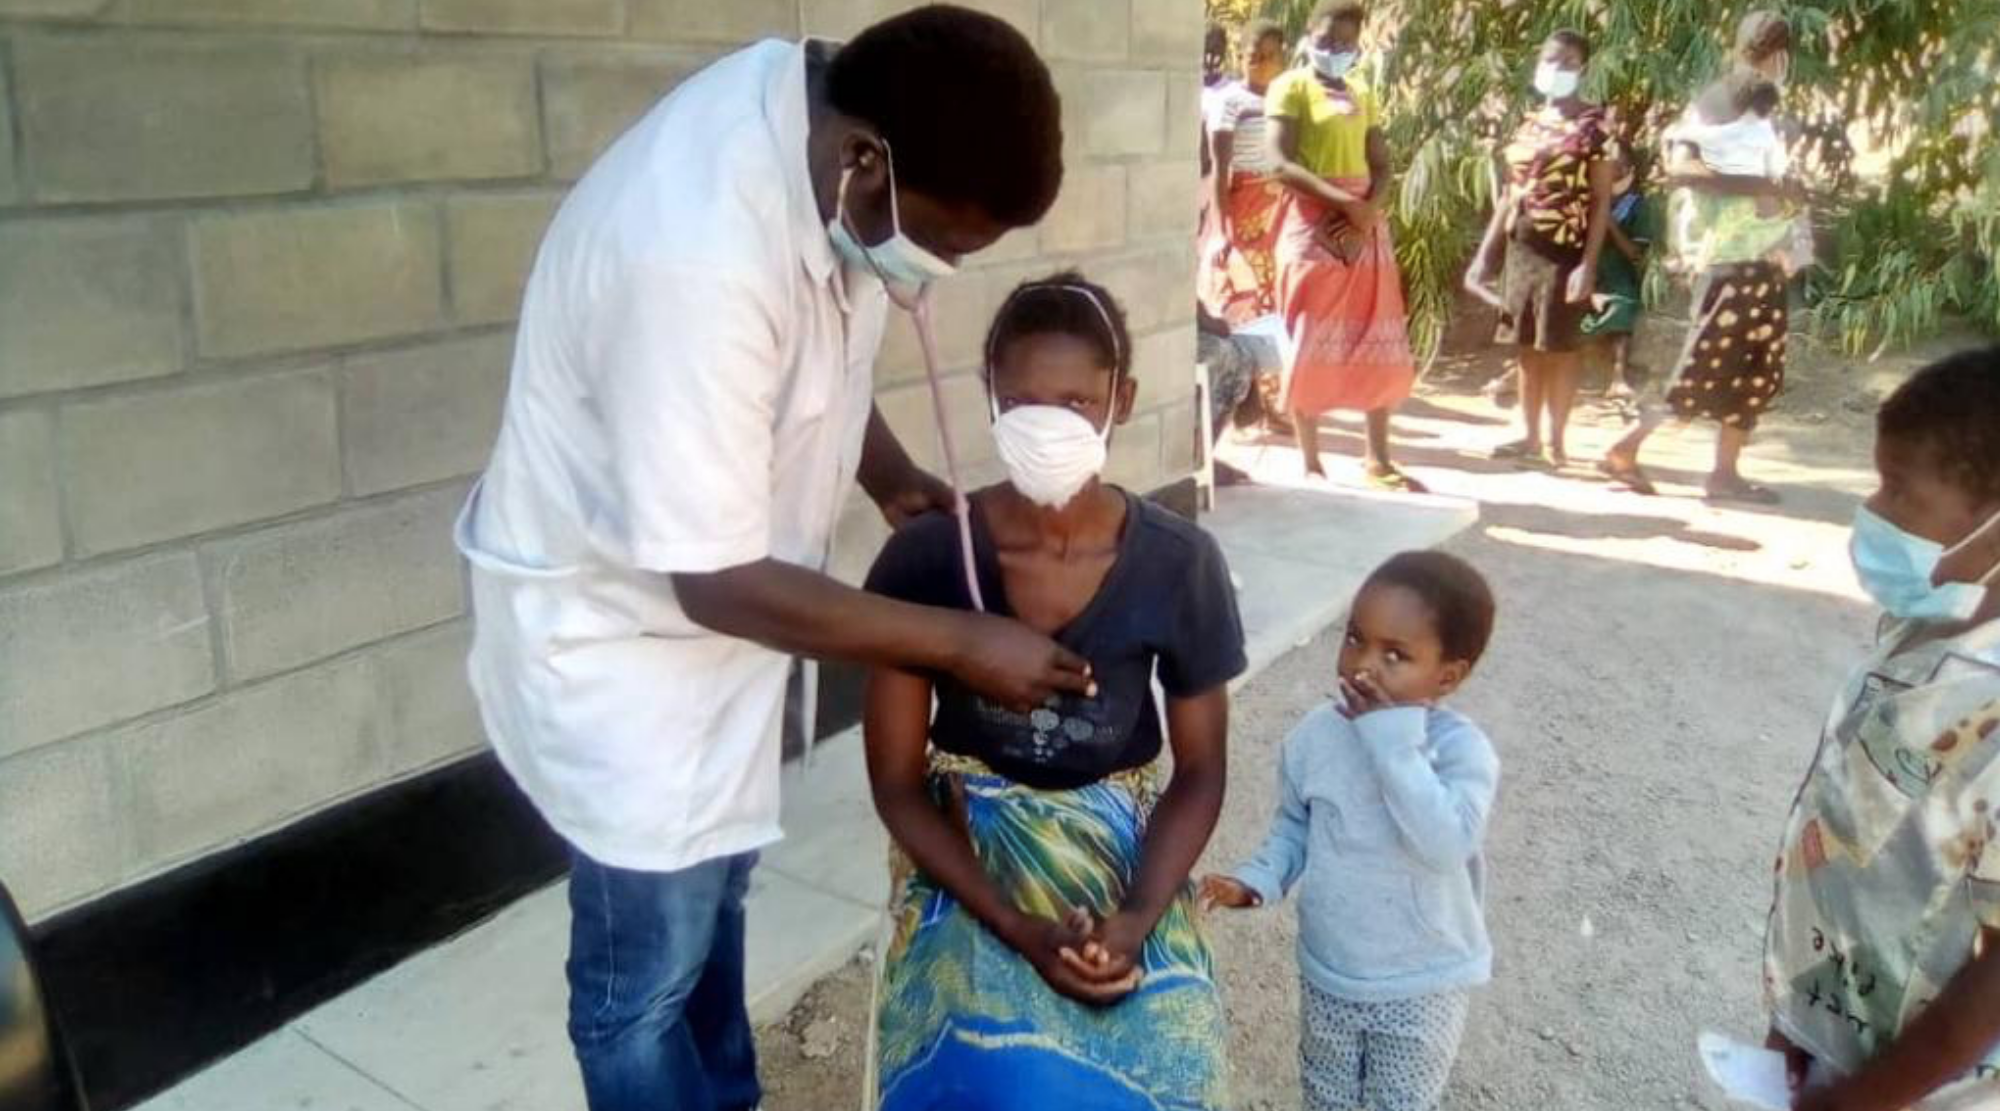 Malawian health care worker provides comprehensive medical care to rural villager of southern Malawi who, normally, would need to travel far to seek care at the nearest government health facility.